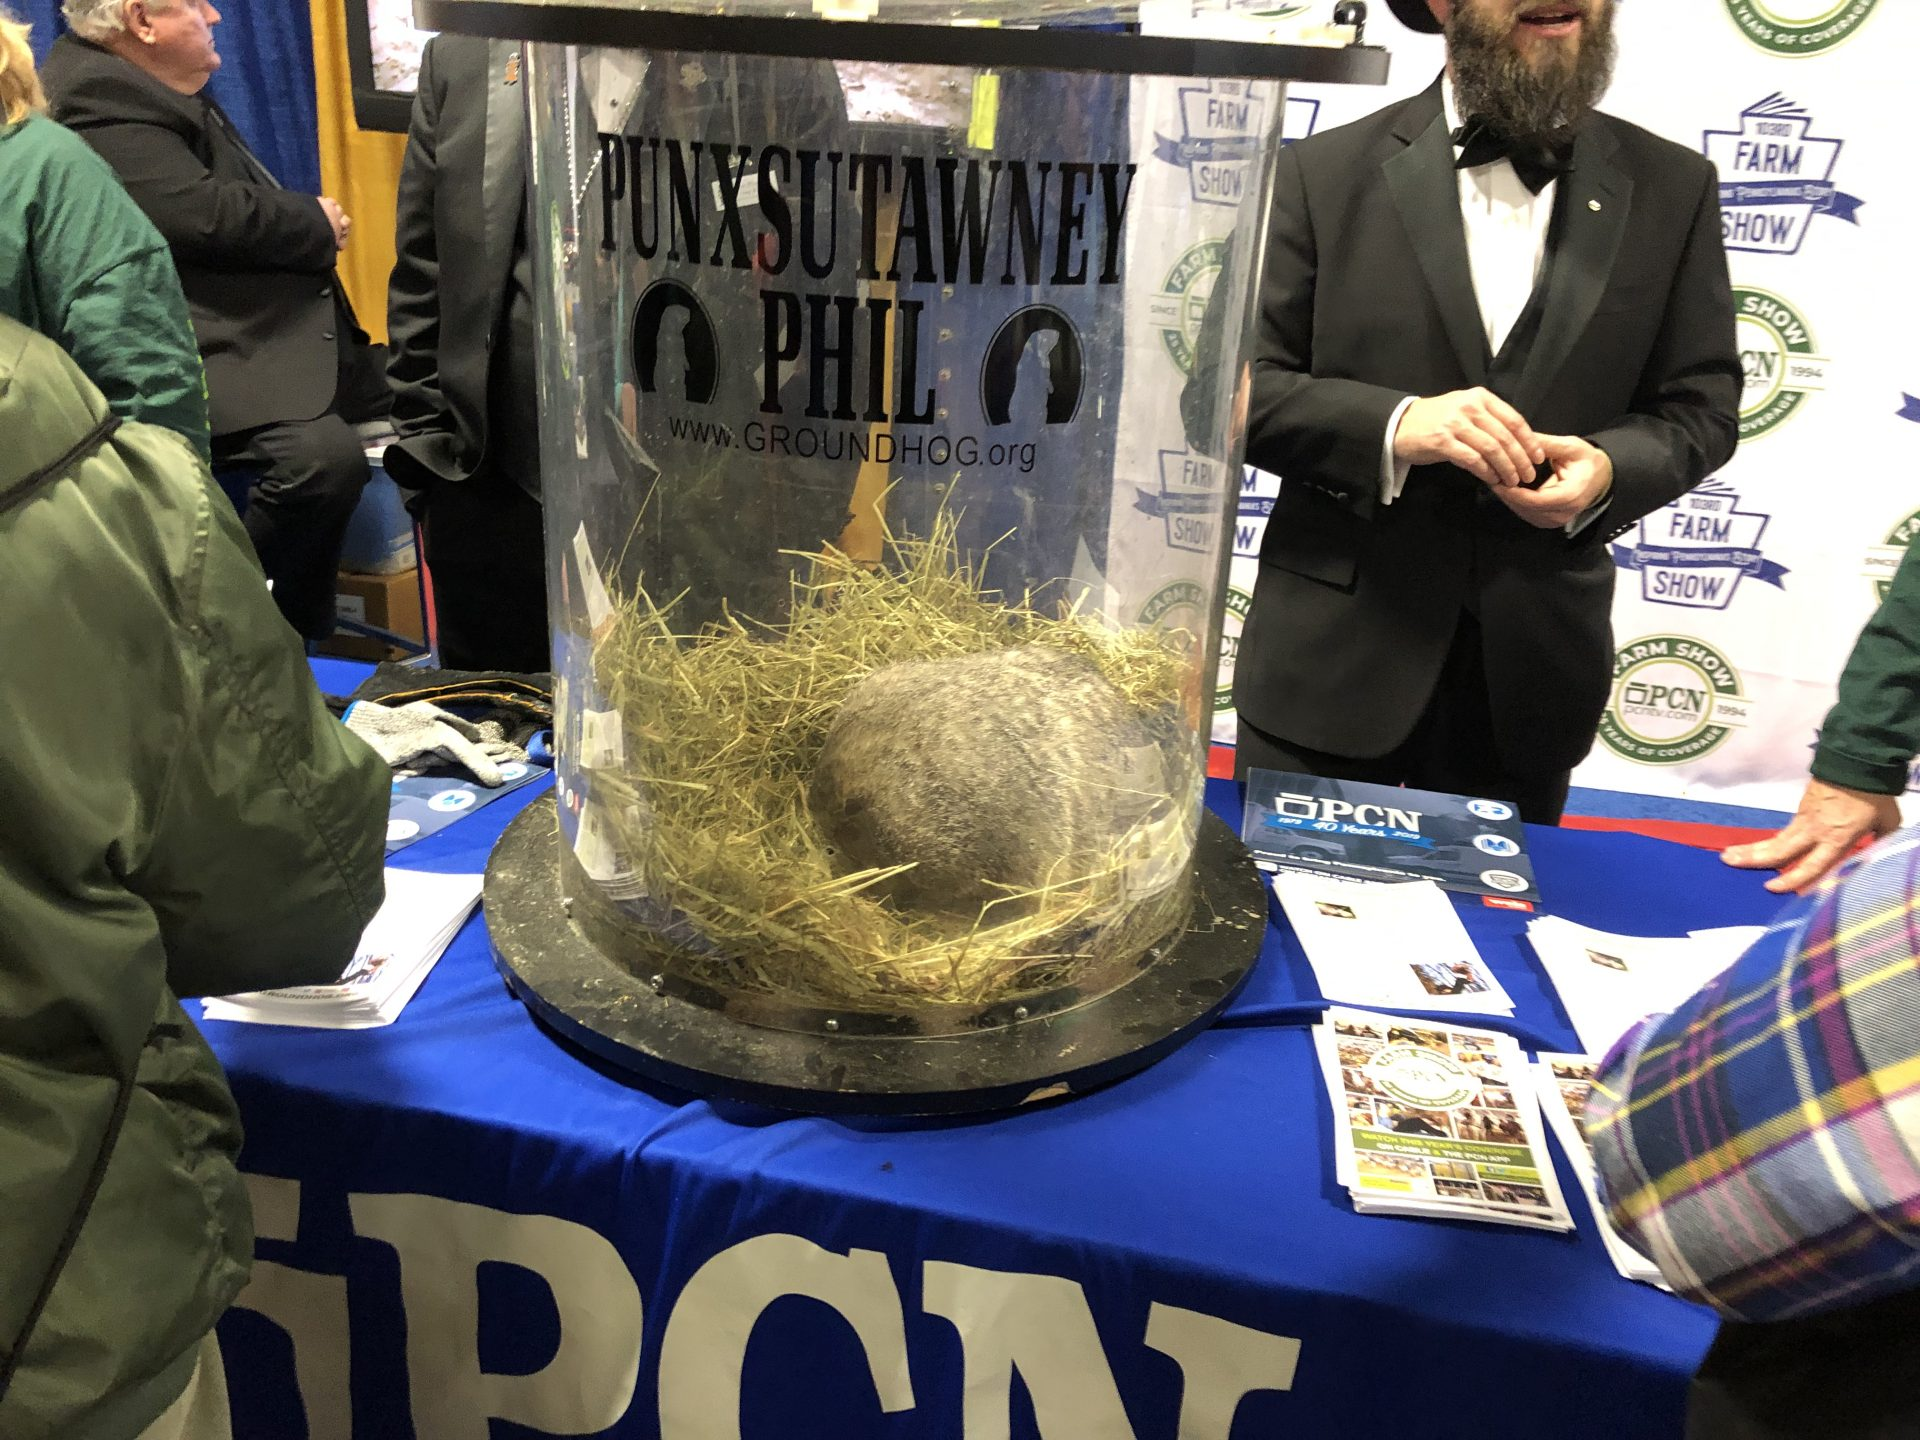 Punxsutawney Phil is seen at the Pennsylvania Farm Show Complex in Harrisburg on Jan. 8, 2019.